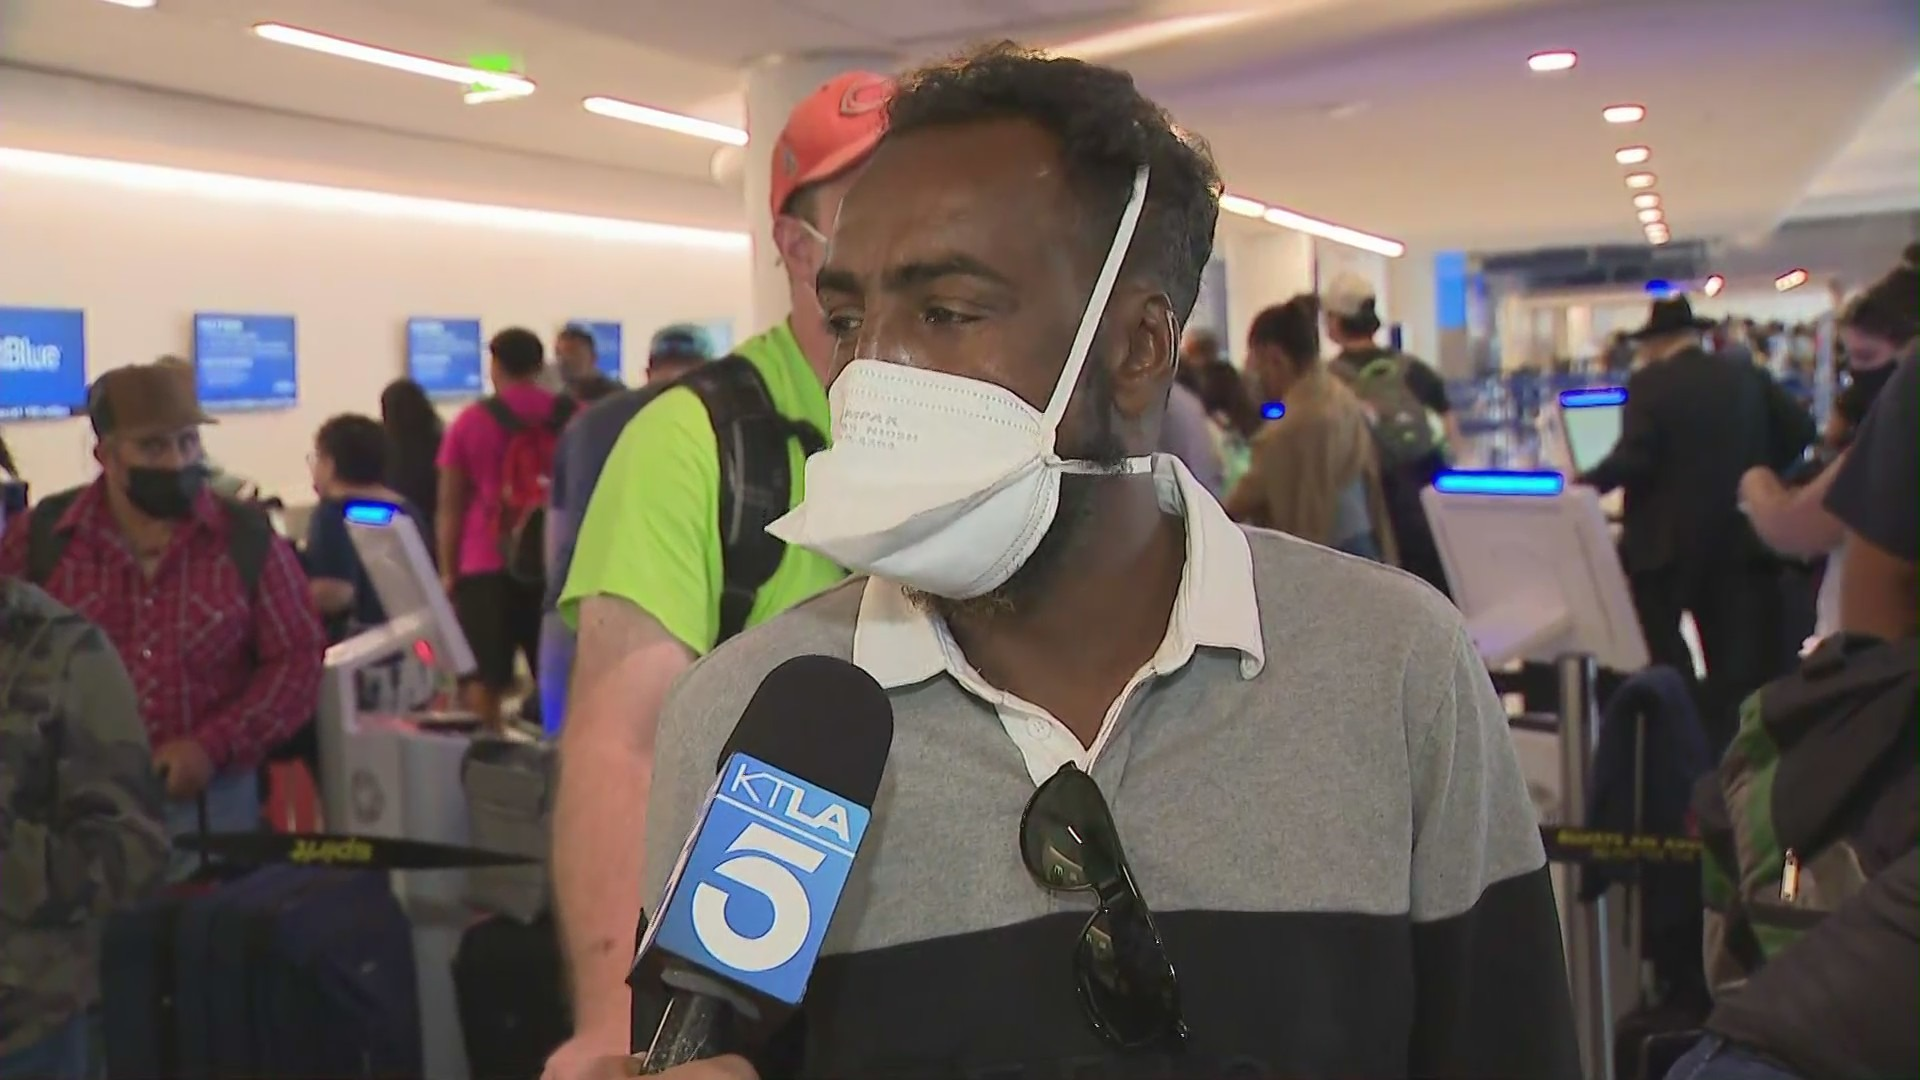 A man waiting to talk to a Spirit Airlines representative on Aug. 3, 2021, says he's been waiting two days for a flight out of LAX. (KTLA)